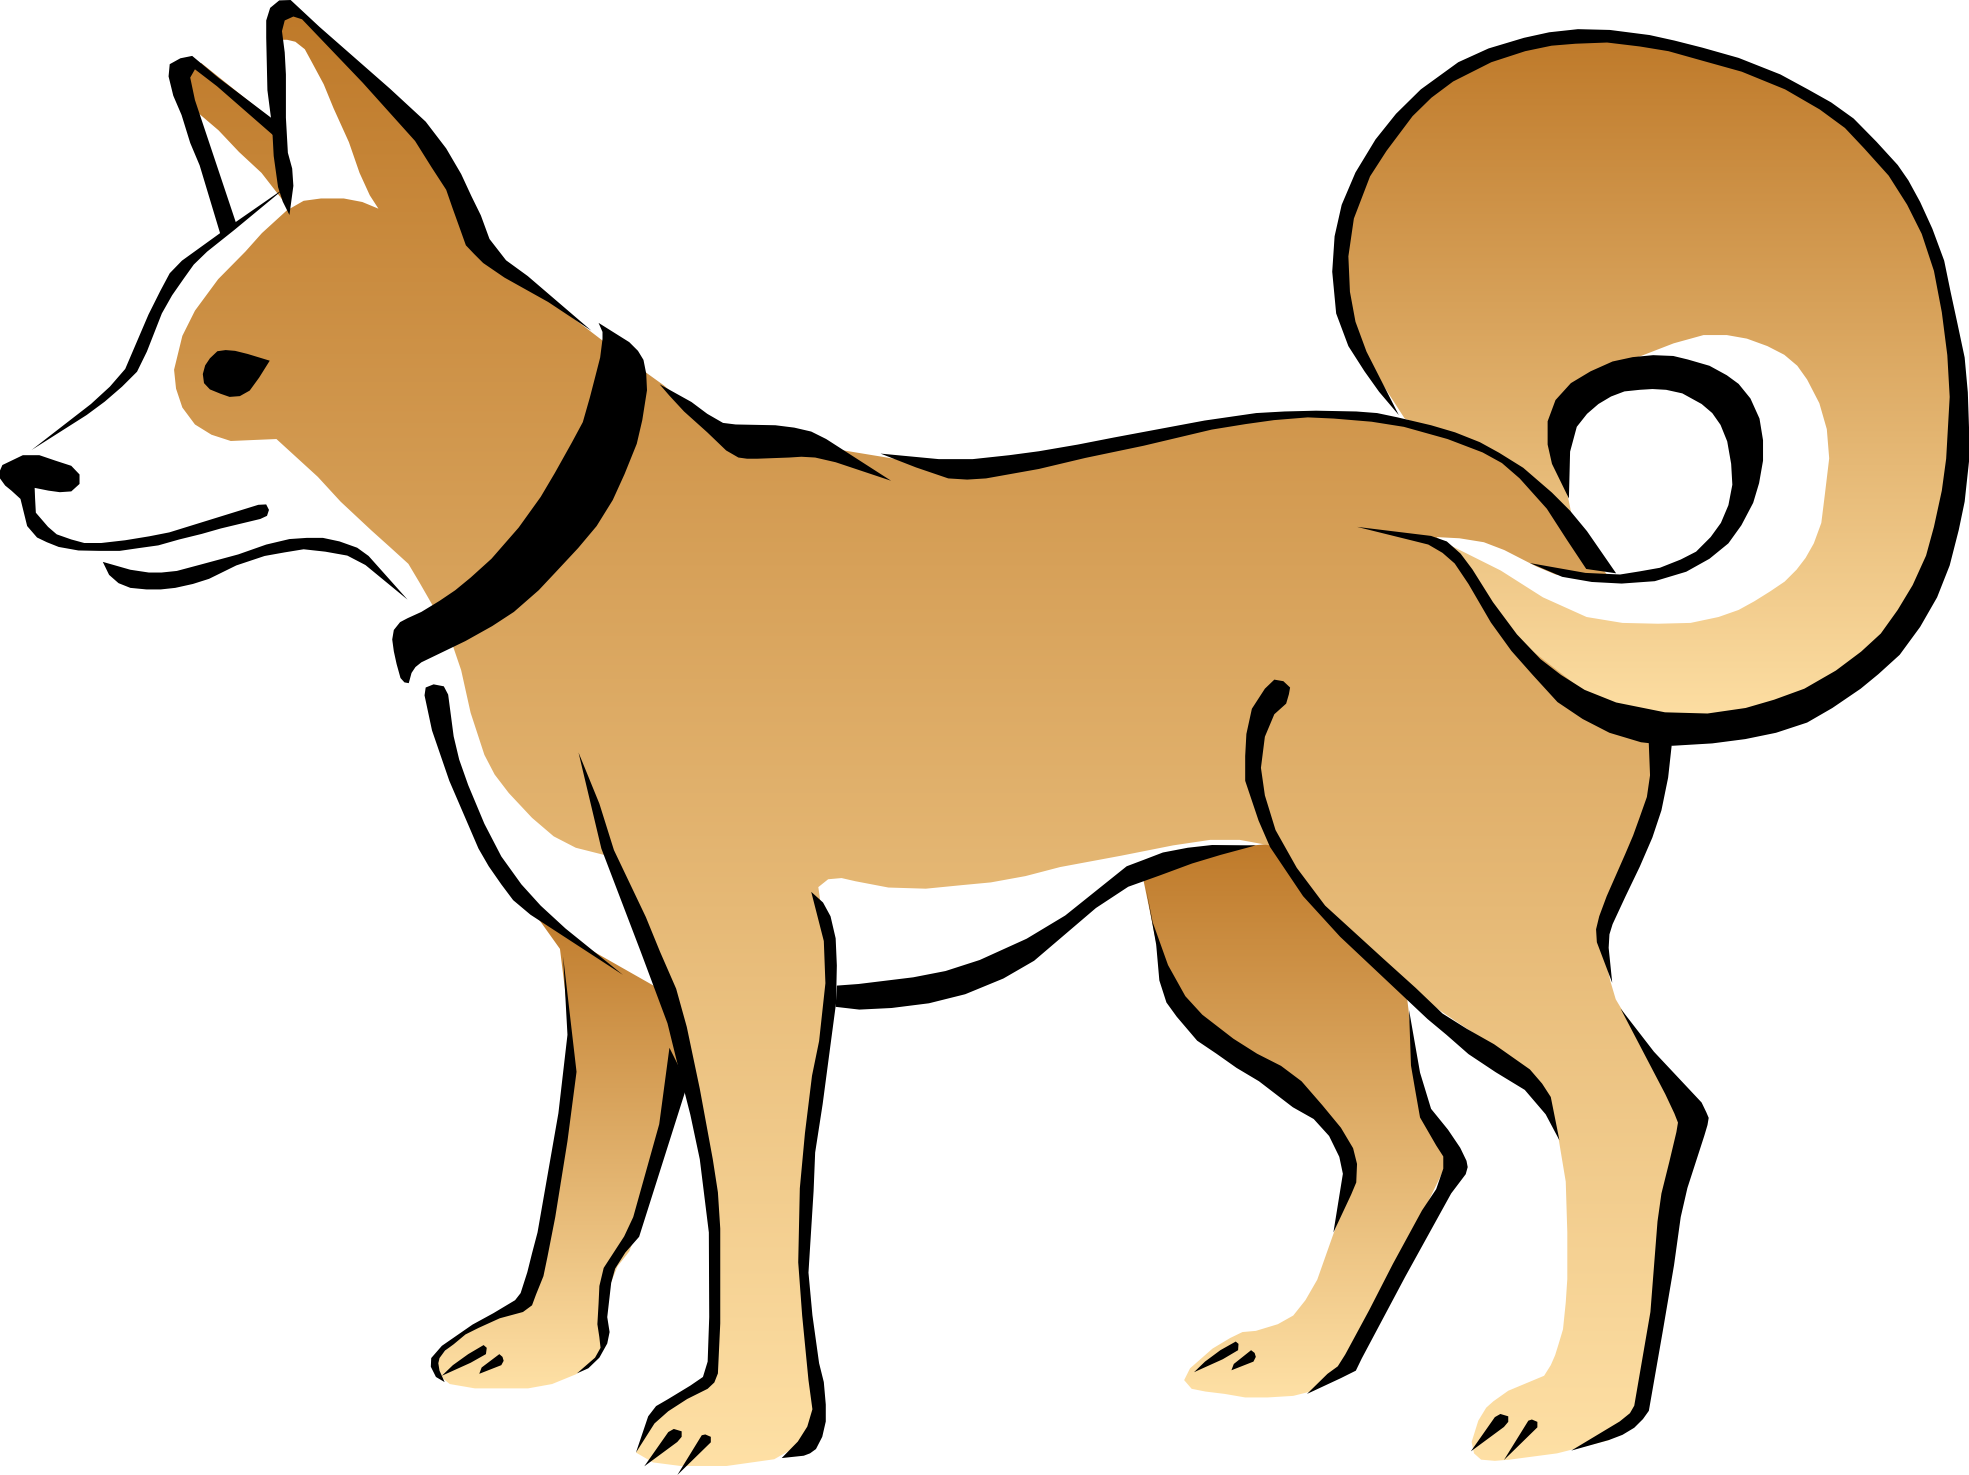 Pet clipart one dog. Dogs clip art and